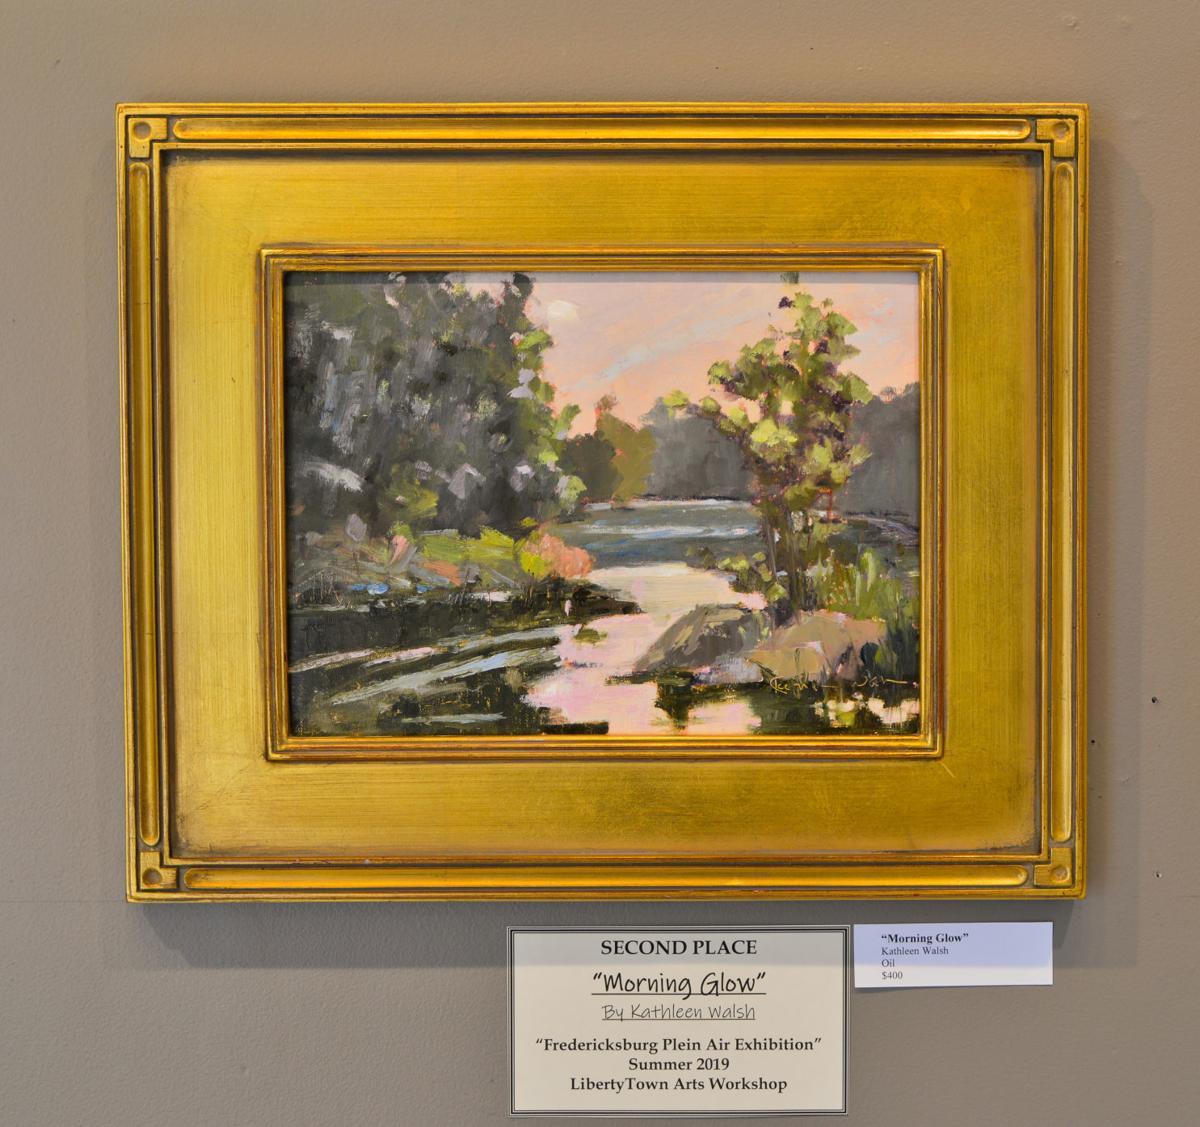 Fredericksburg Plein Air Exhibition